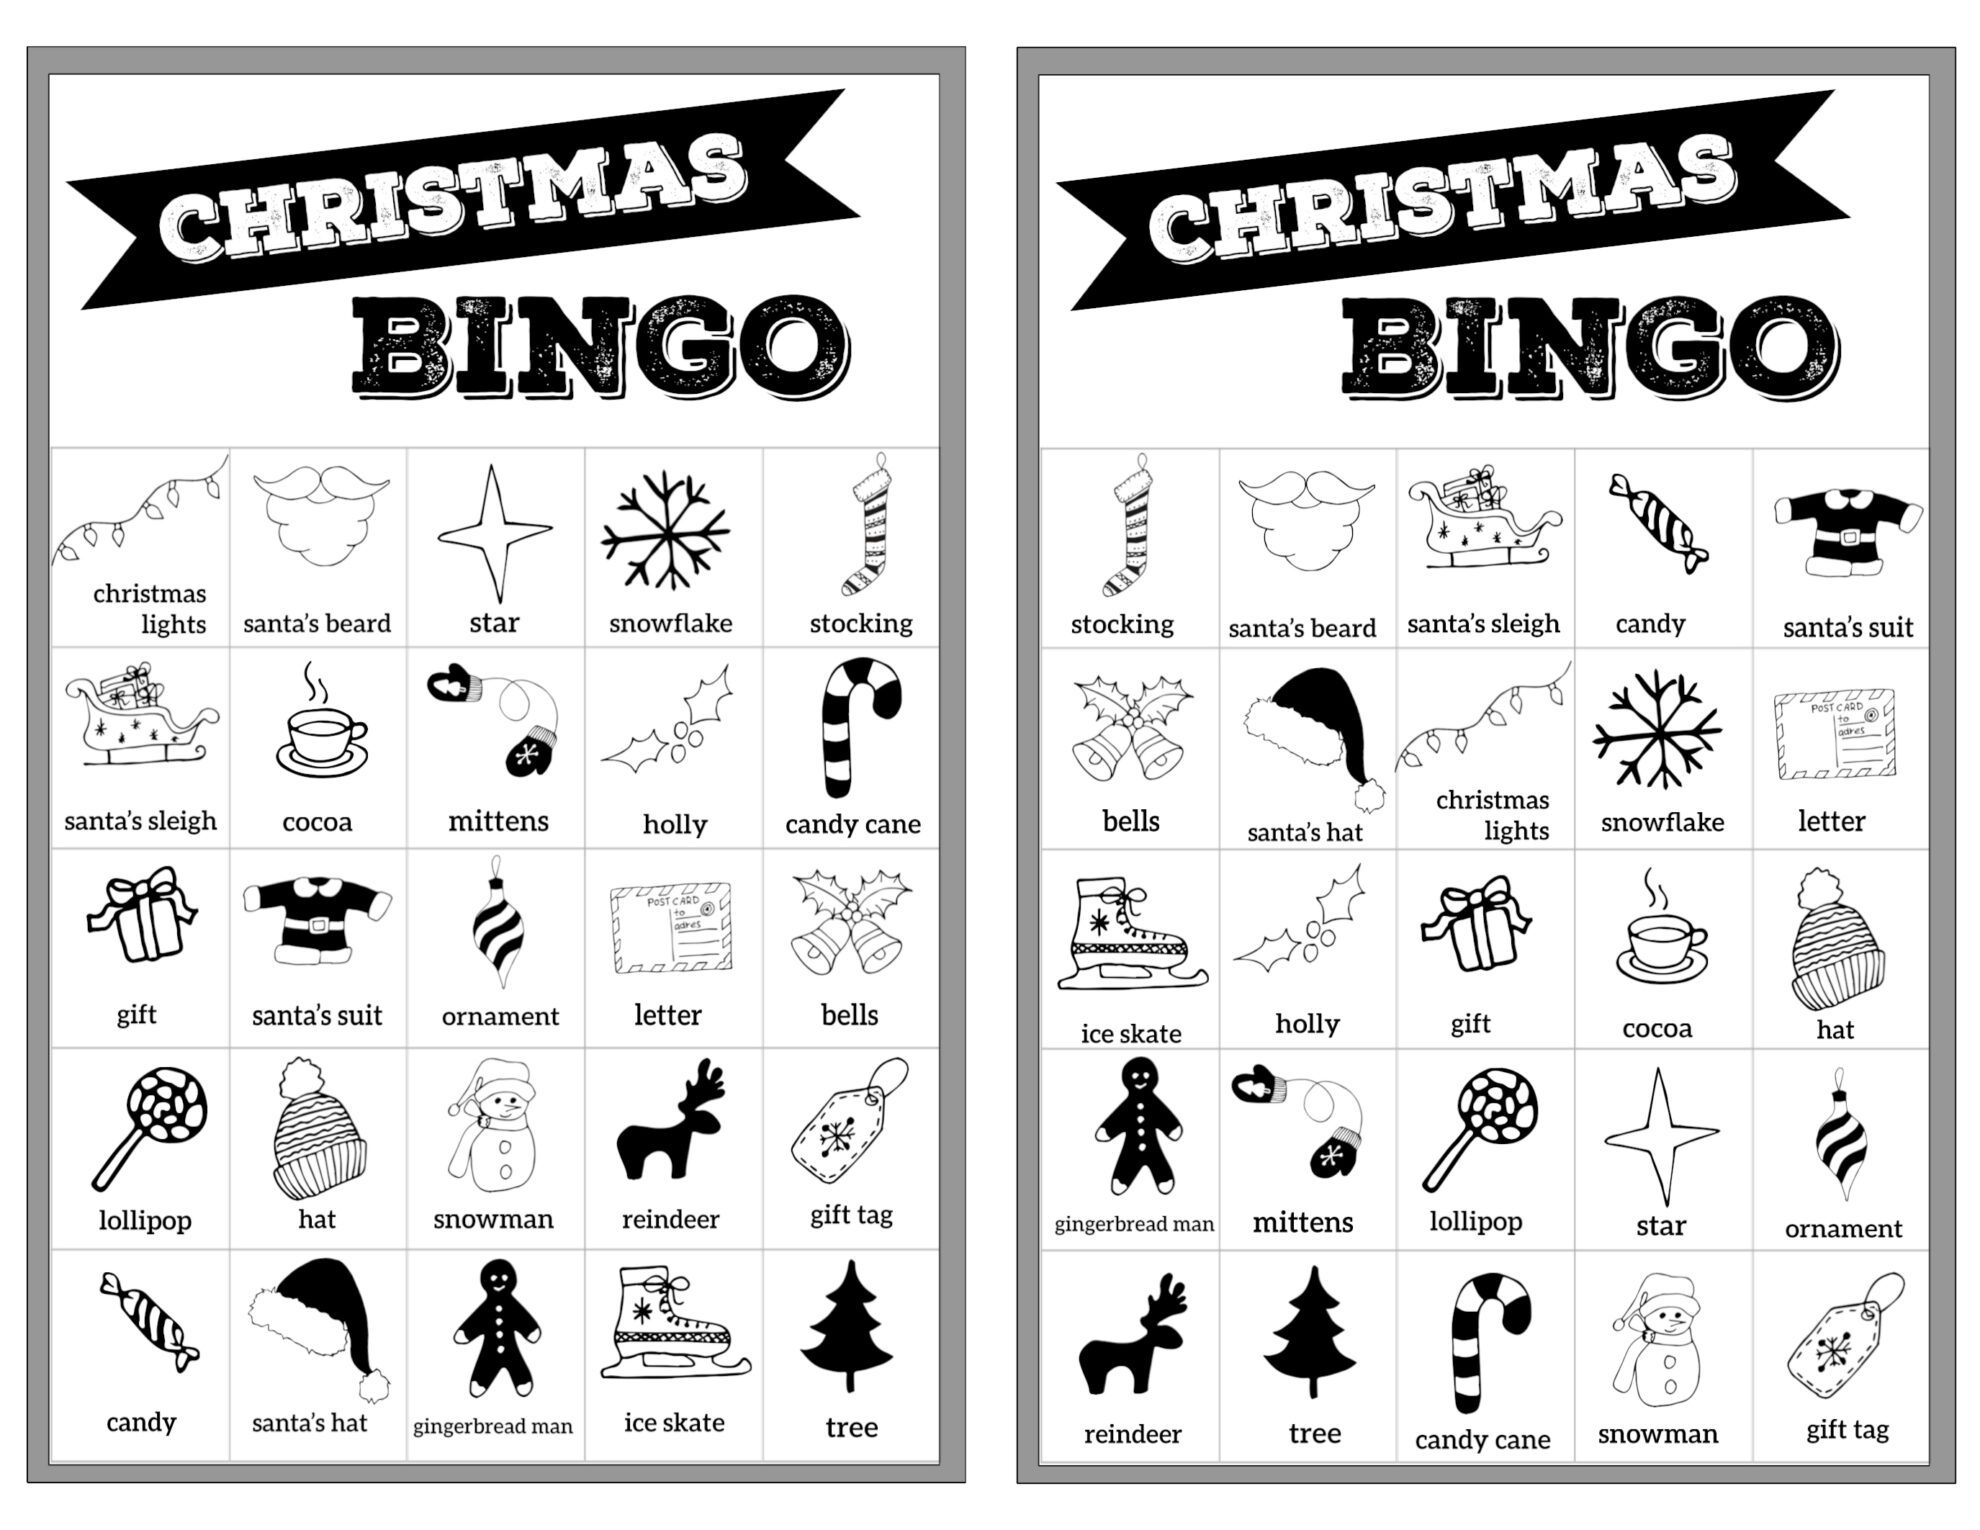 Free Christmas Bingo Printable Cards - Paper Trail Design - Free Printable Bingo Cards For Large Groups